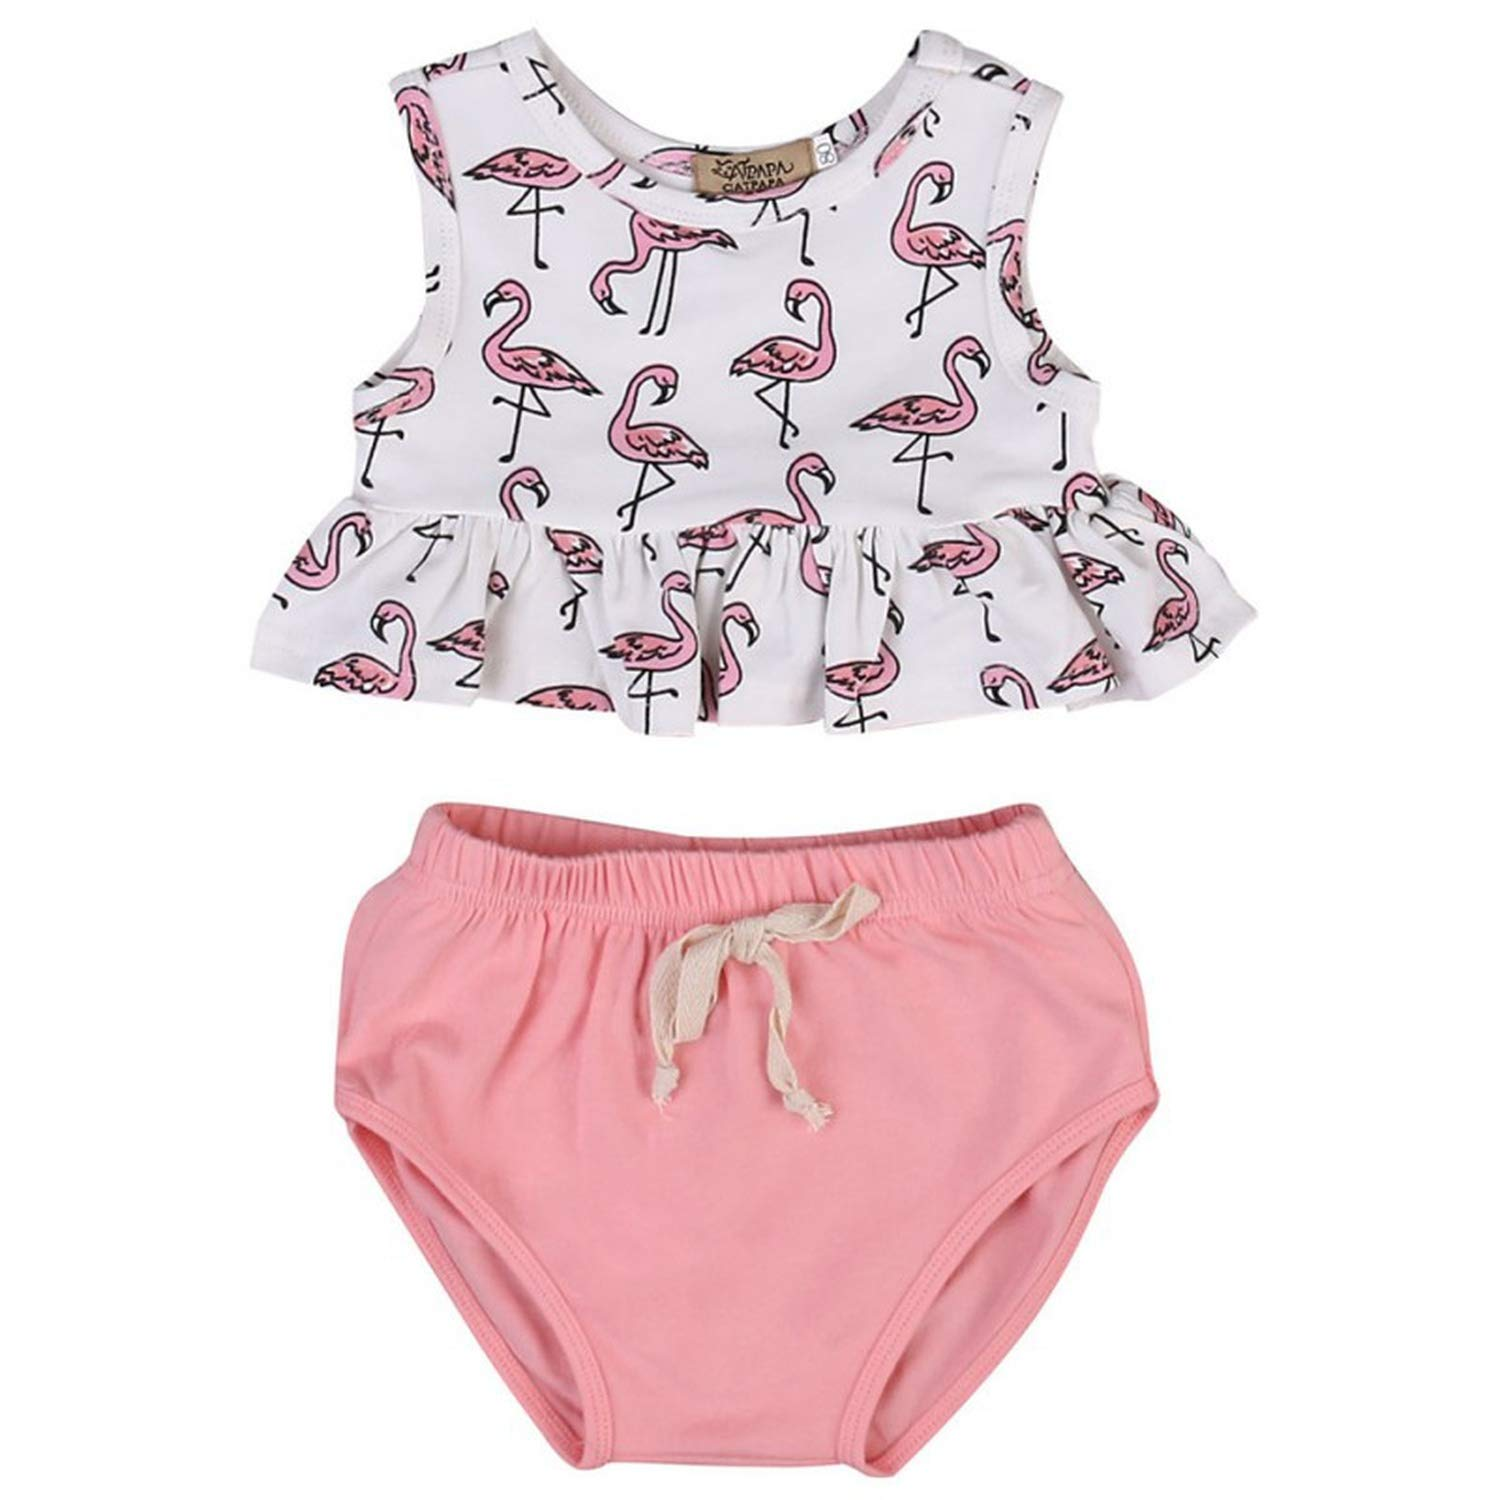 Baby Girl Romper Sleeveless Flamingo Ruffles T Shirt Bloomer Bottoms Infant Outifts Sunsuit 2pcs//Set